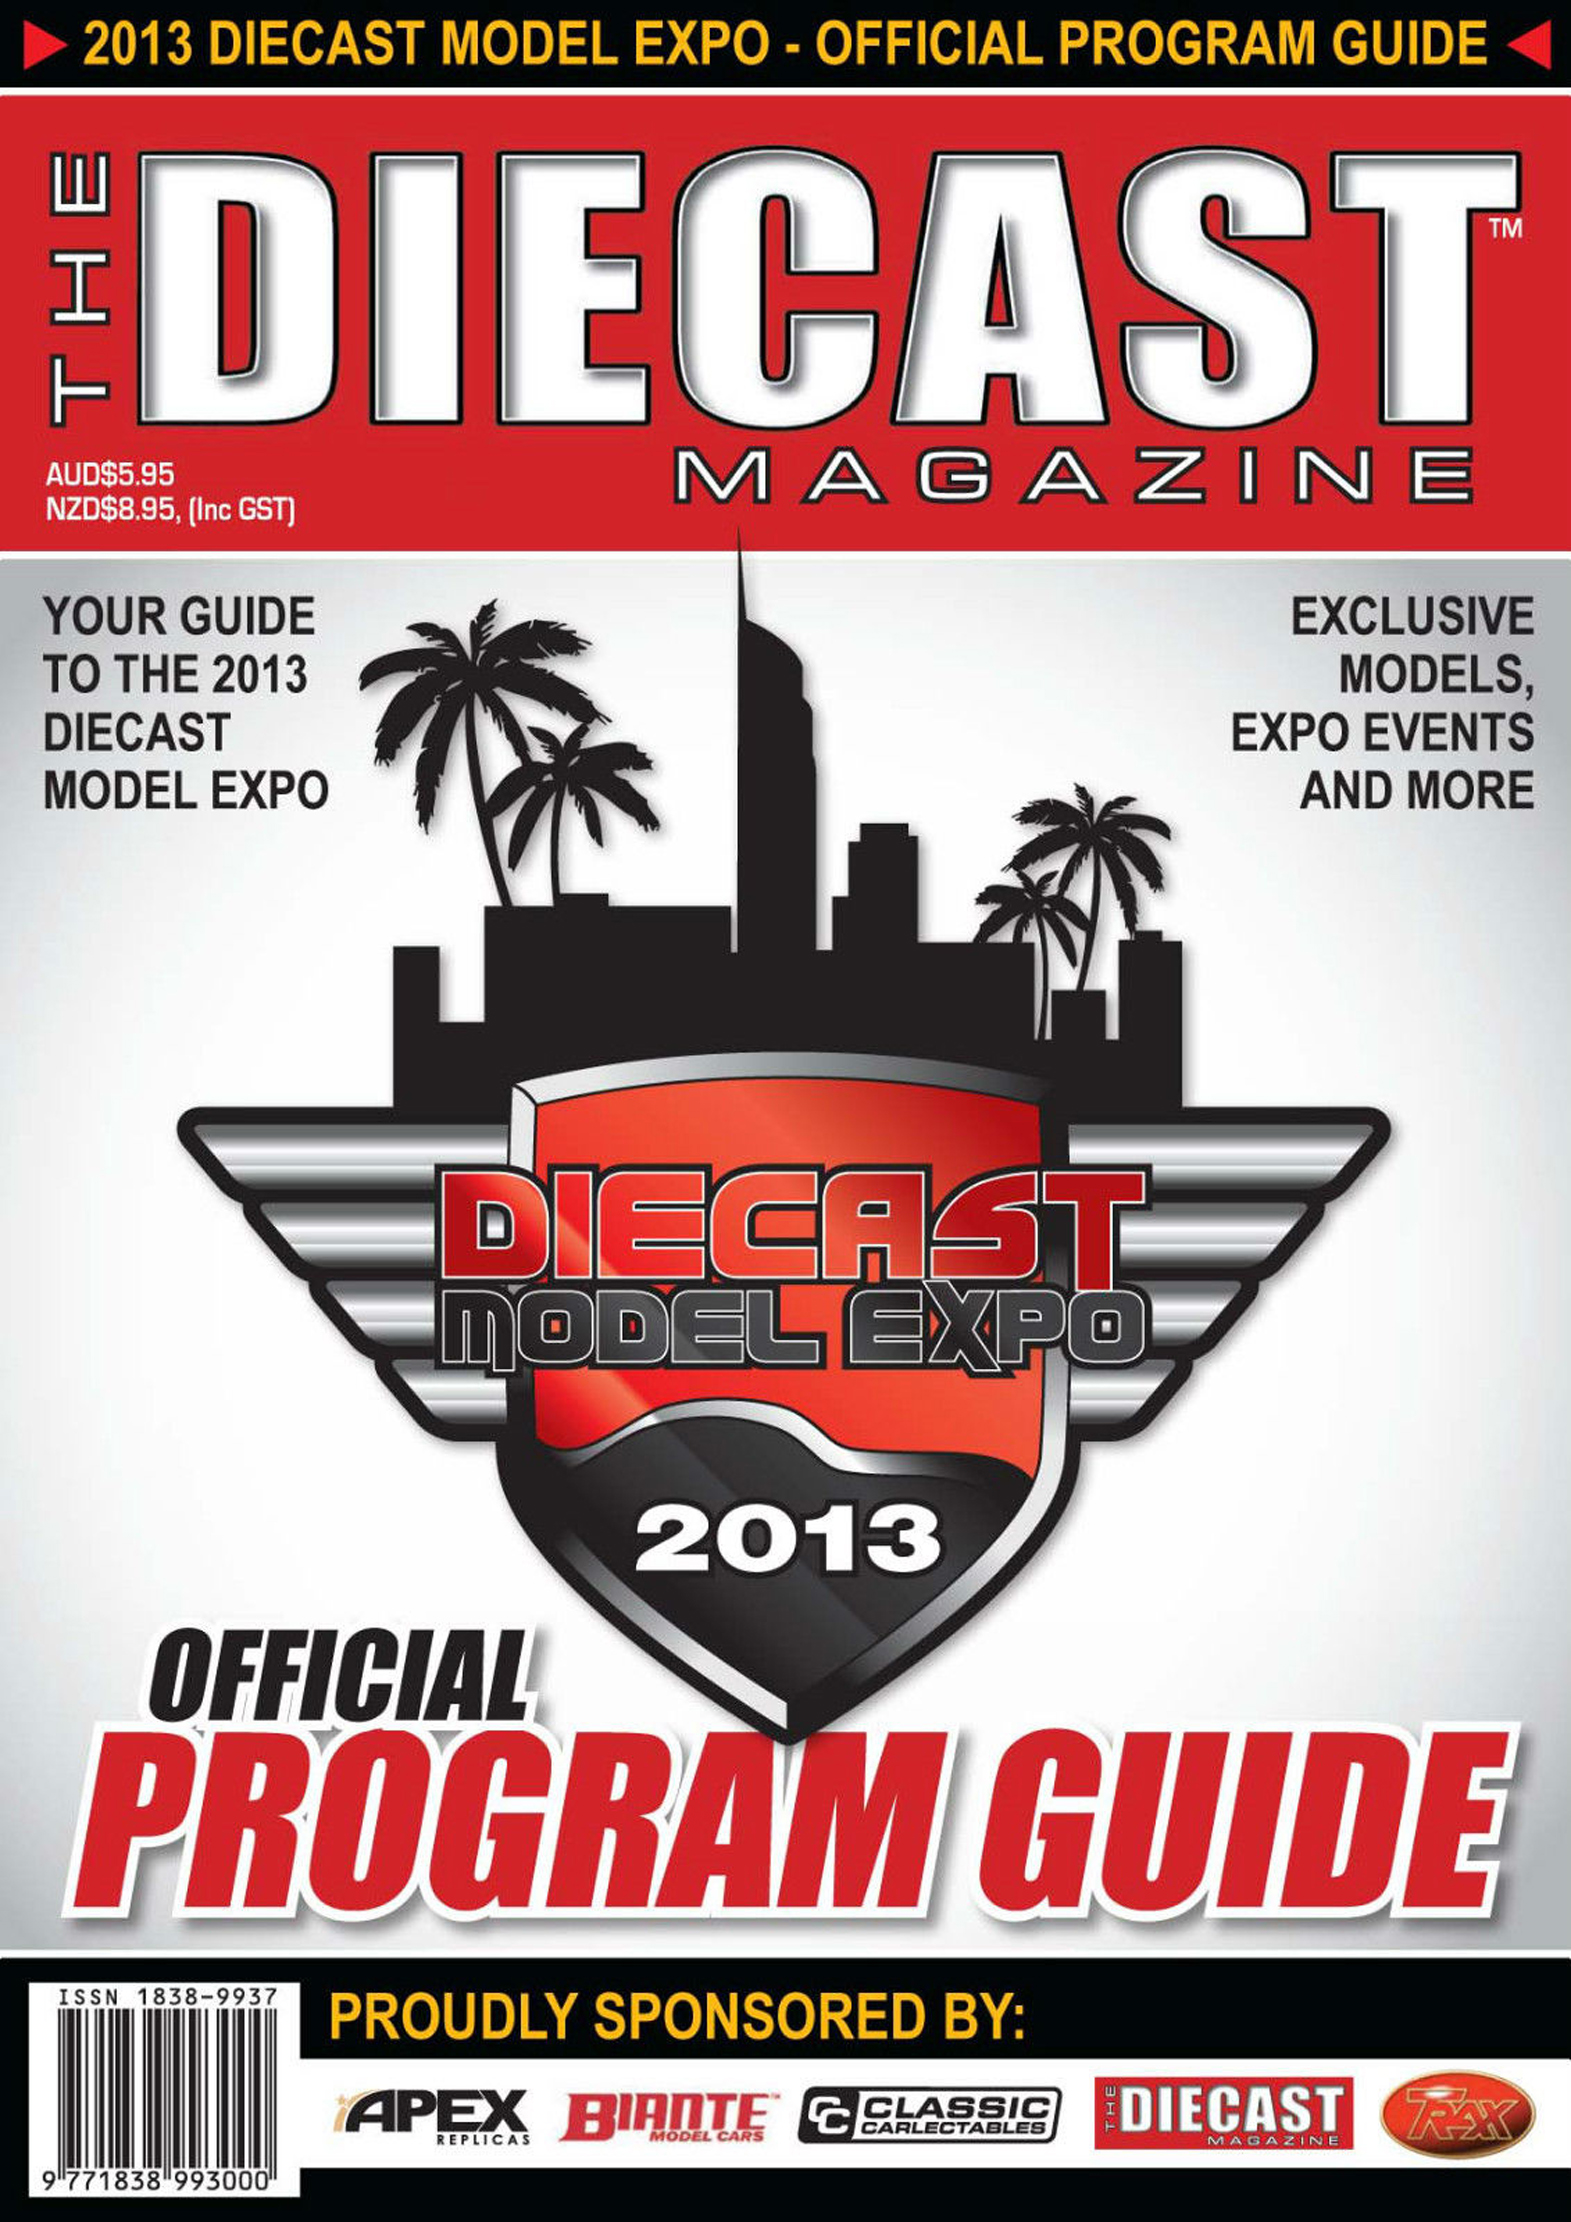 2013 Diecast Model Expo Official Program Guide